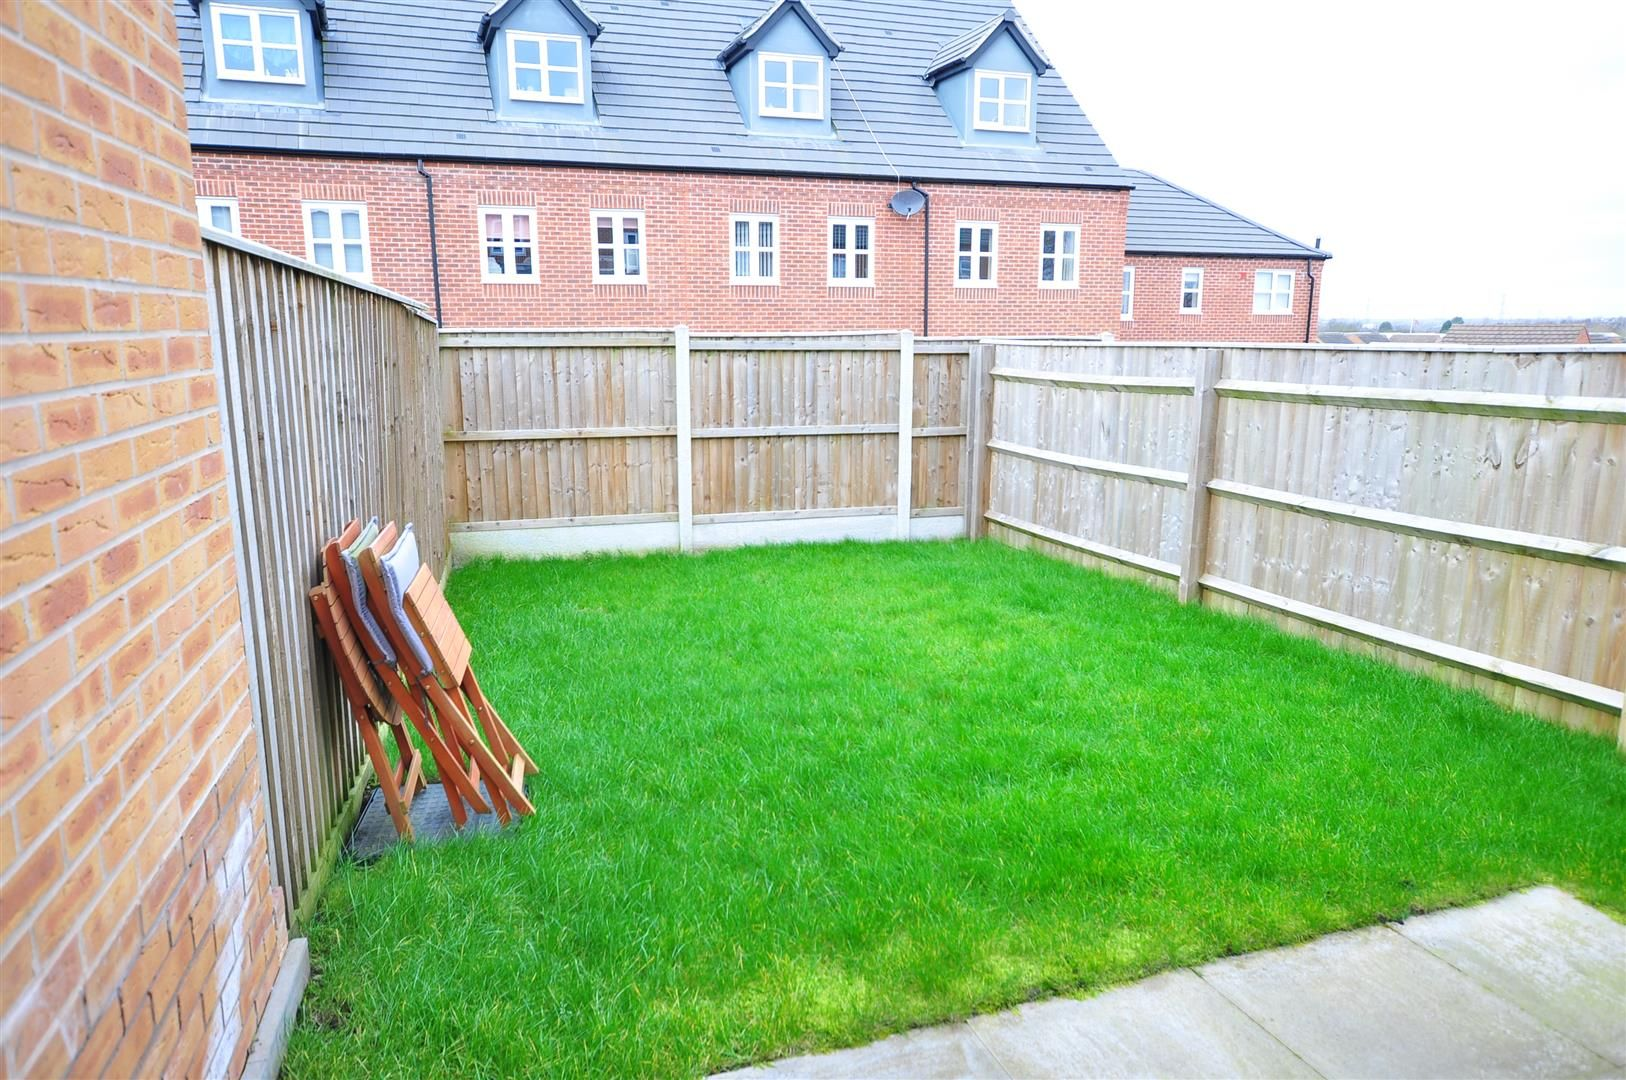 2 bed end-of-terrace for sale 11